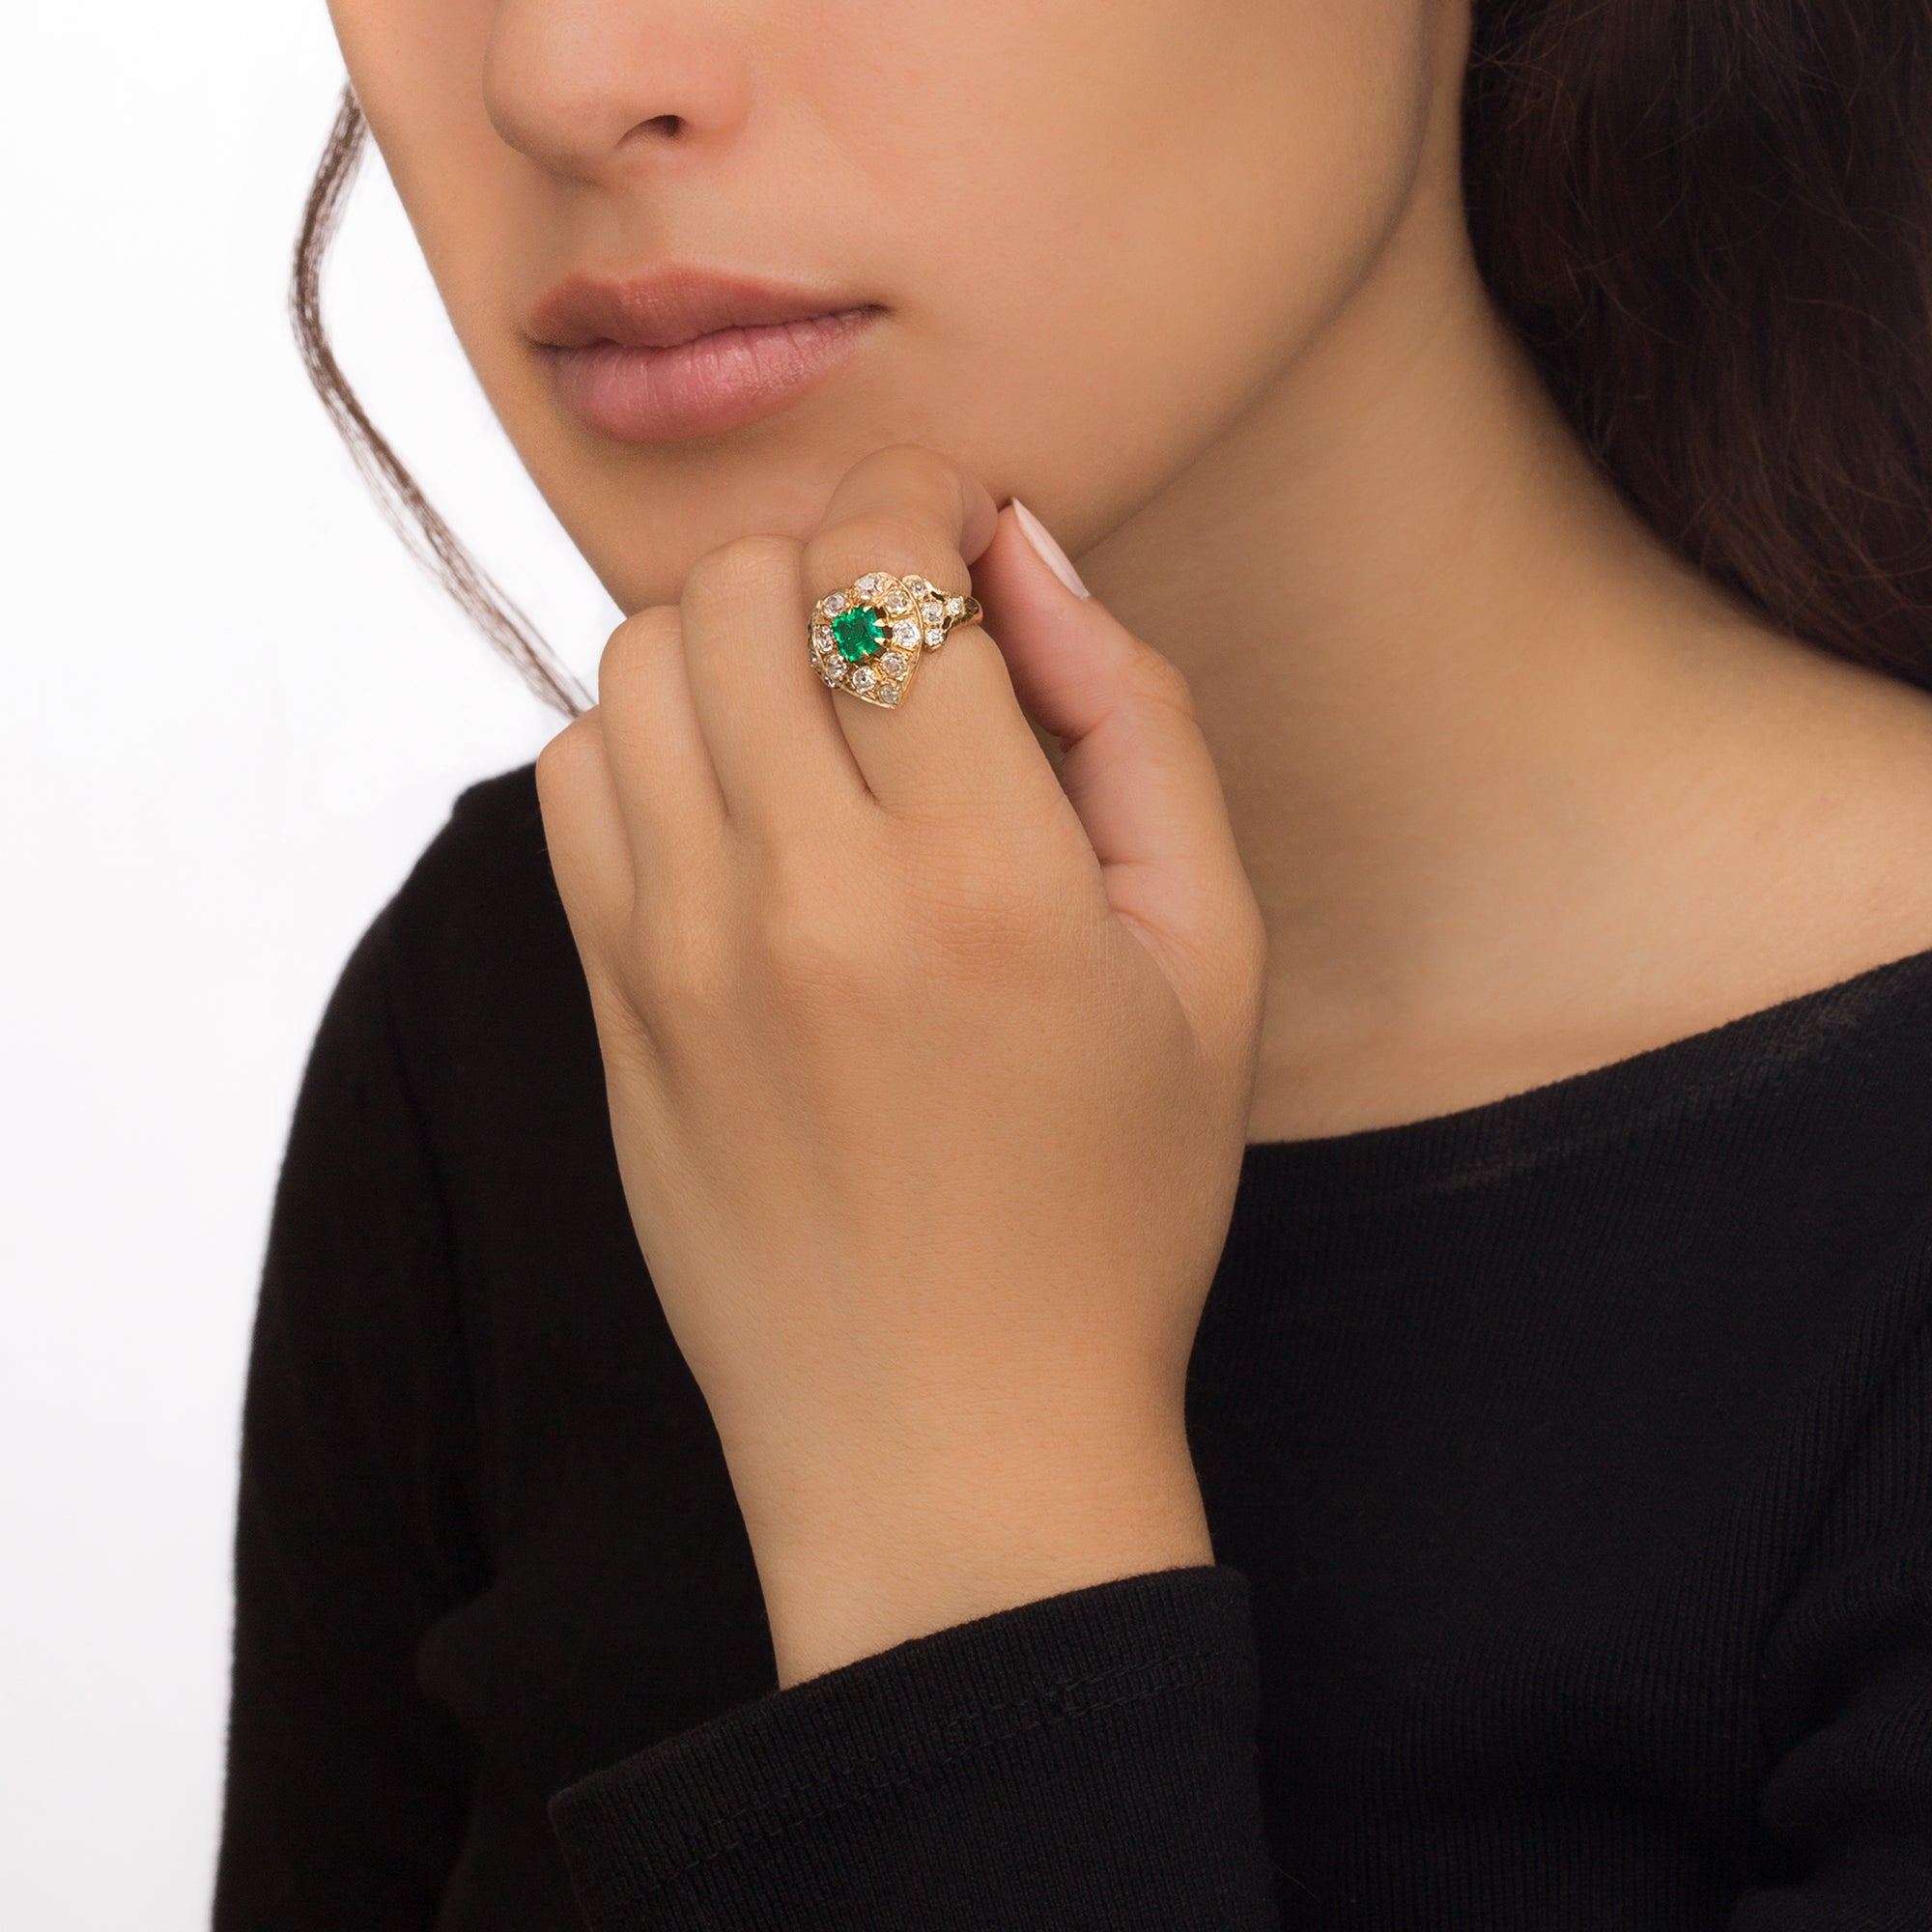 Emerald & Diamond Heart Ring - Vintage Jewelry - Rings | Broken English Jewelry